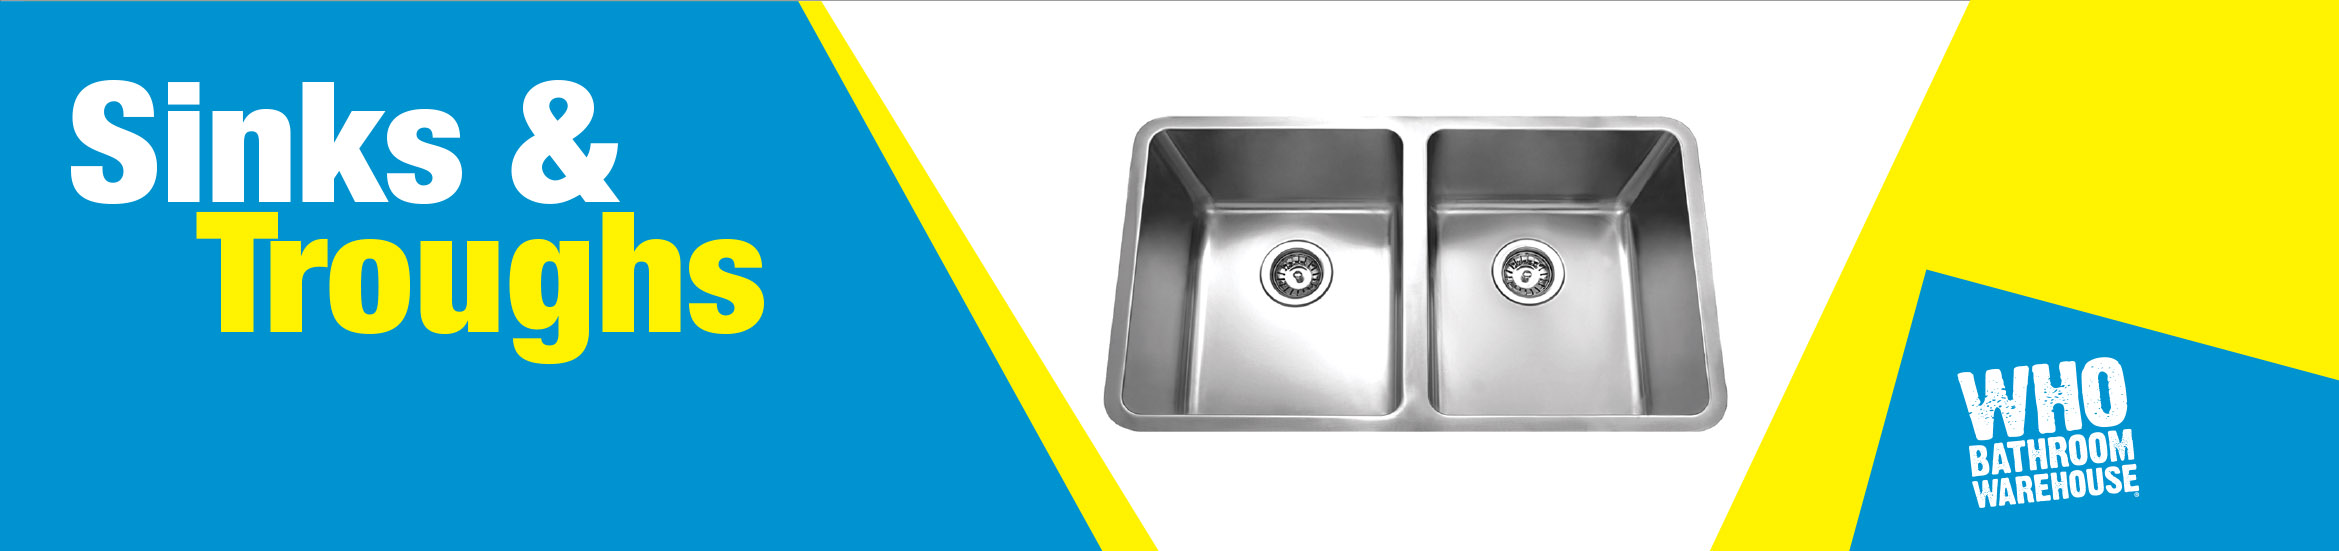 mc-image-sinks-troughs.jpg